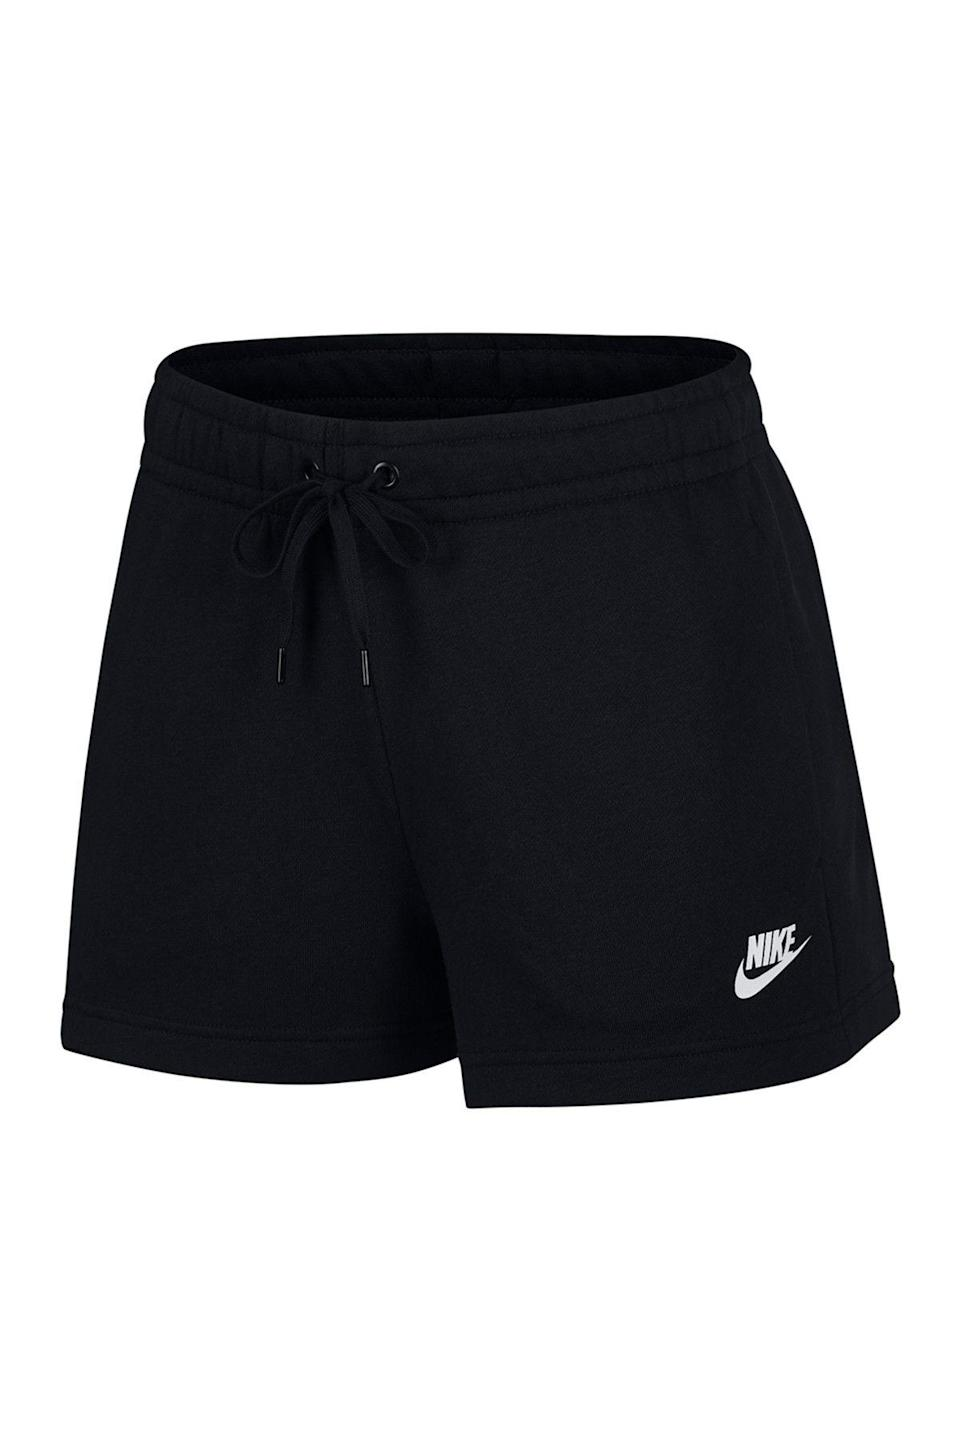 """<p><strong>Nike</strong></p><p>nordstromrack.com</p><p><a href=""""https://go.redirectingat.com?id=74968X1596630&url=https%3A%2F%2Fwww.nordstromrack.com%2Fshop%2Fproduct%2F3098163&sref=https%3A%2F%2Fwww.womenshealthmag.com%2Fstyle%2Fg33534500%2Fnordstrom-rack-nike-sale%2F"""" rel=""""nofollow noopener"""" target=""""_blank"""" data-ylk=""""slk:Shop Now"""" class=""""link rapid-noclick-resp"""">Shop Now</a></p><p><del>$35</del><strong><br>$26.97</strong></p><p>With an elastic waistband and terry fleece material, these shorts are the summer equivalent to your favorite pair of sweatpants. </p>"""